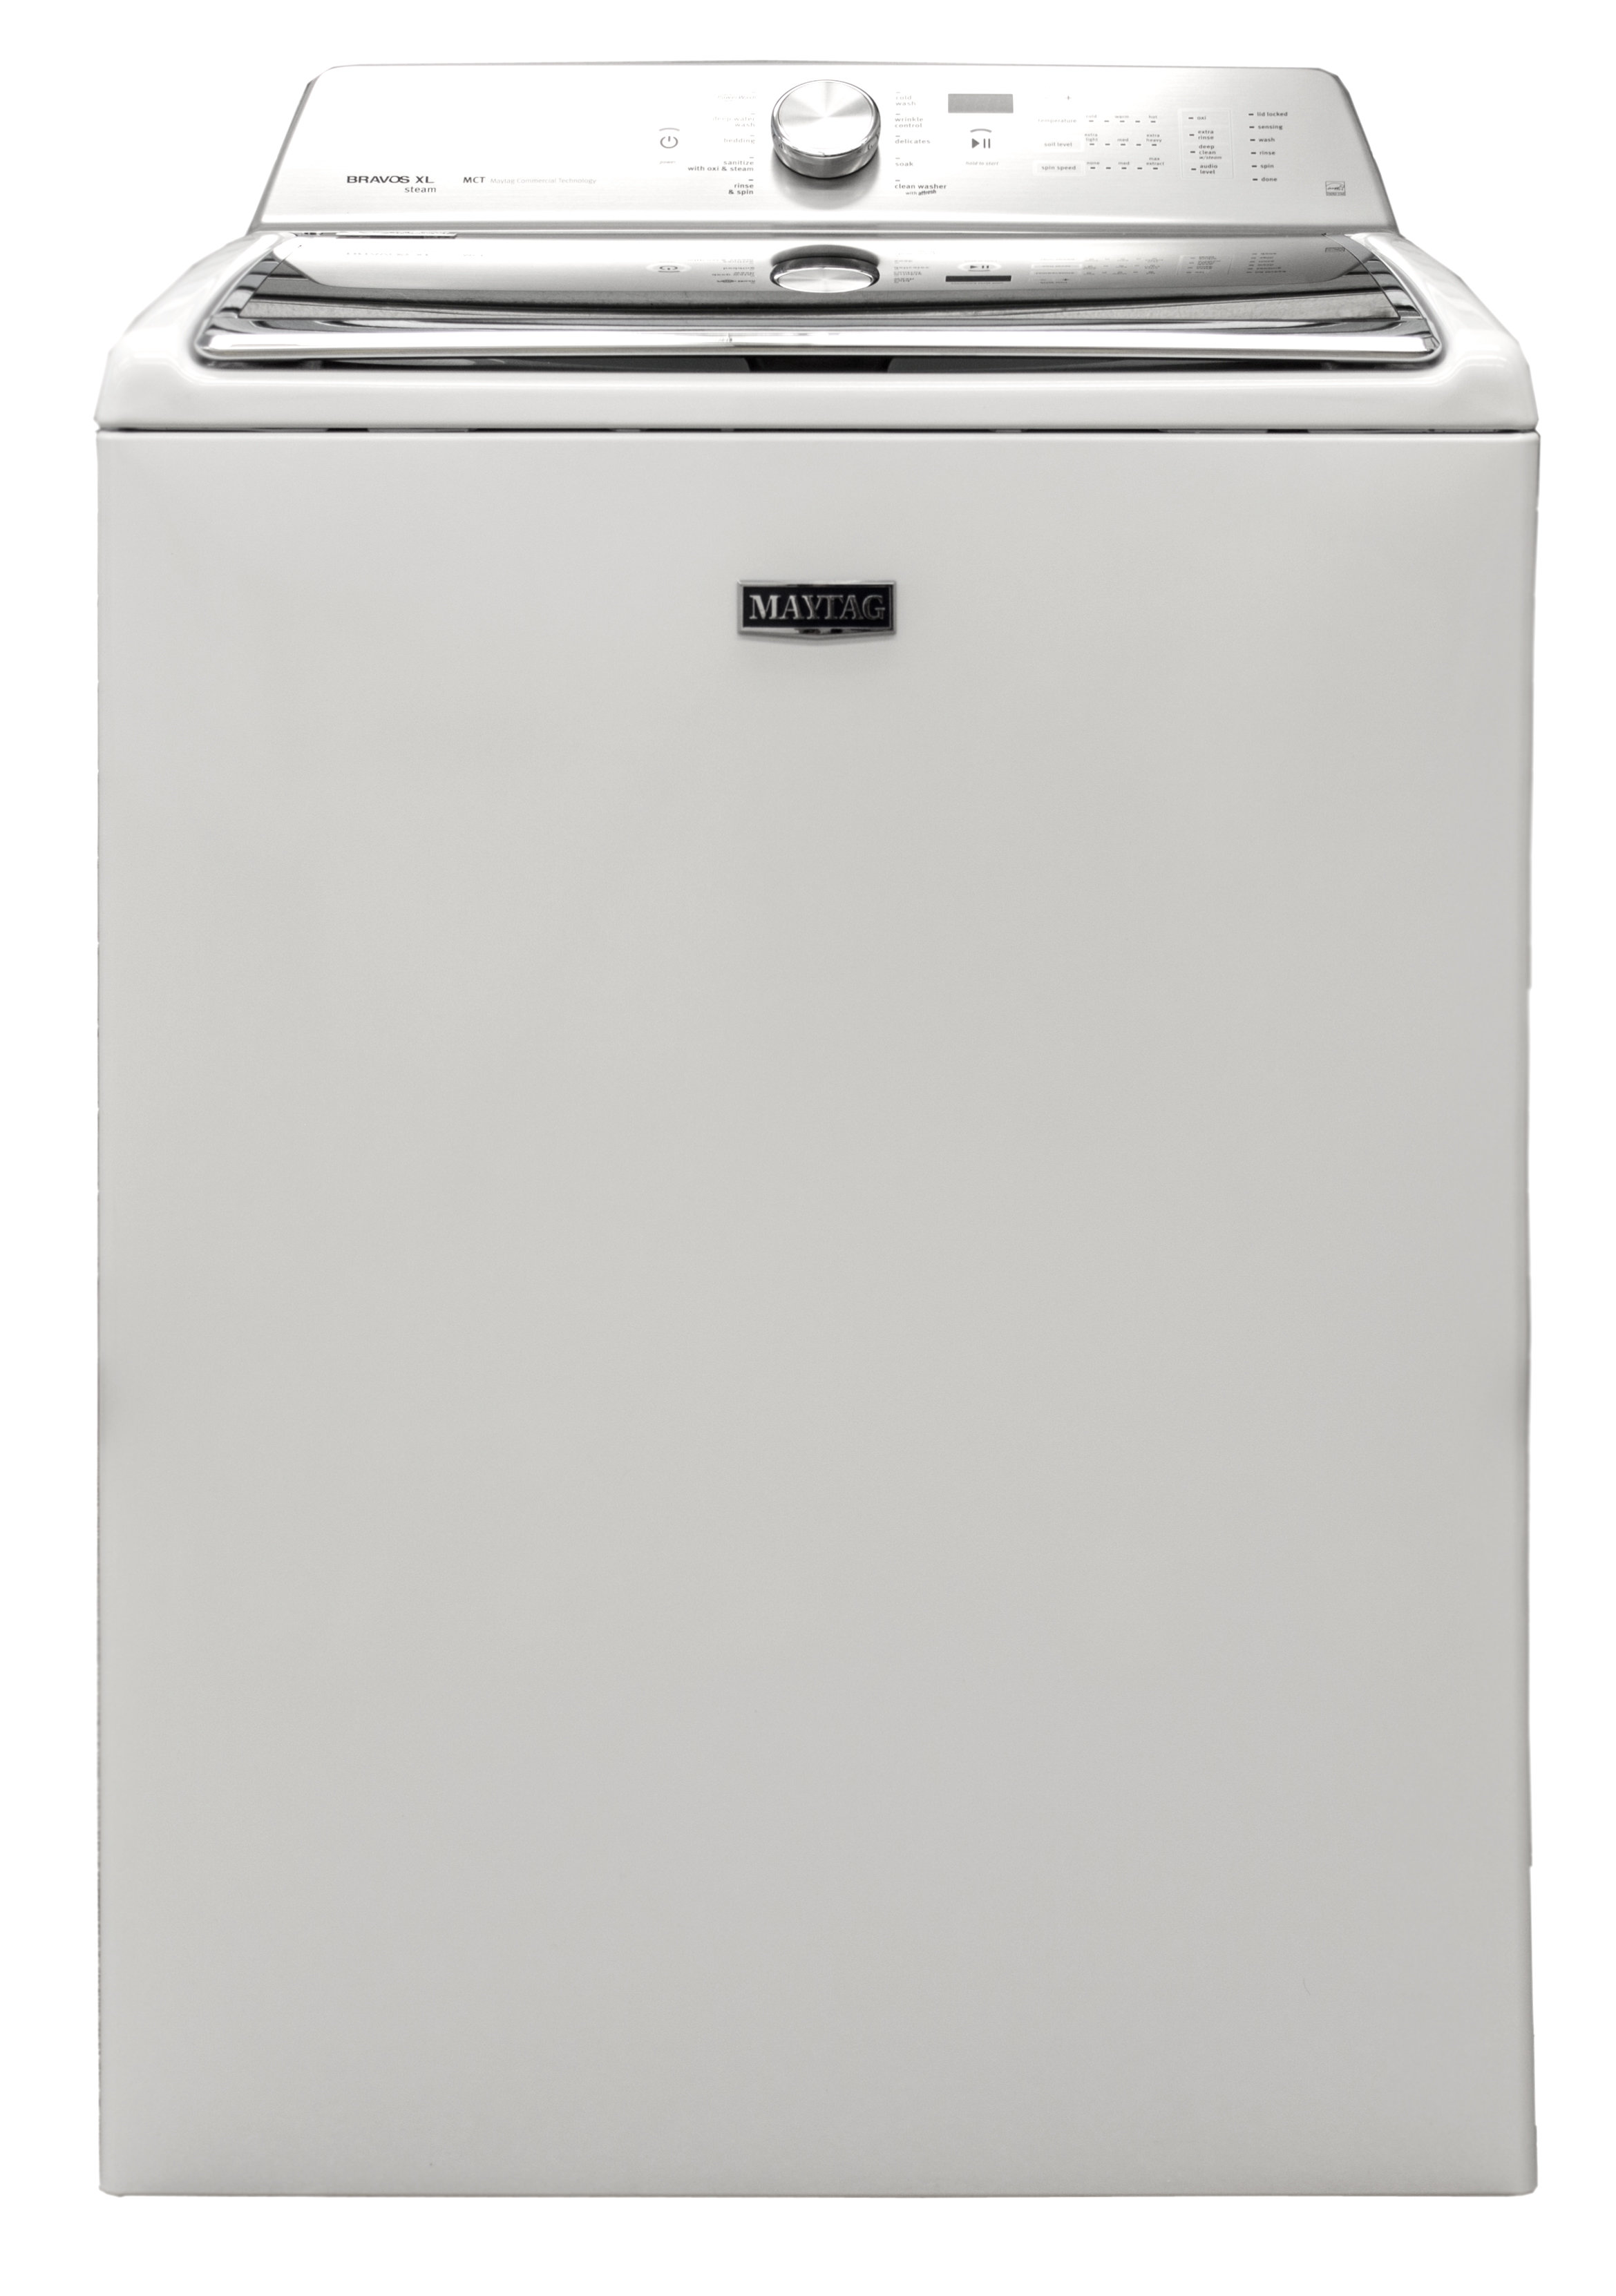 The  Maytag MVWB855DW classes it up a bit with a silver accent.